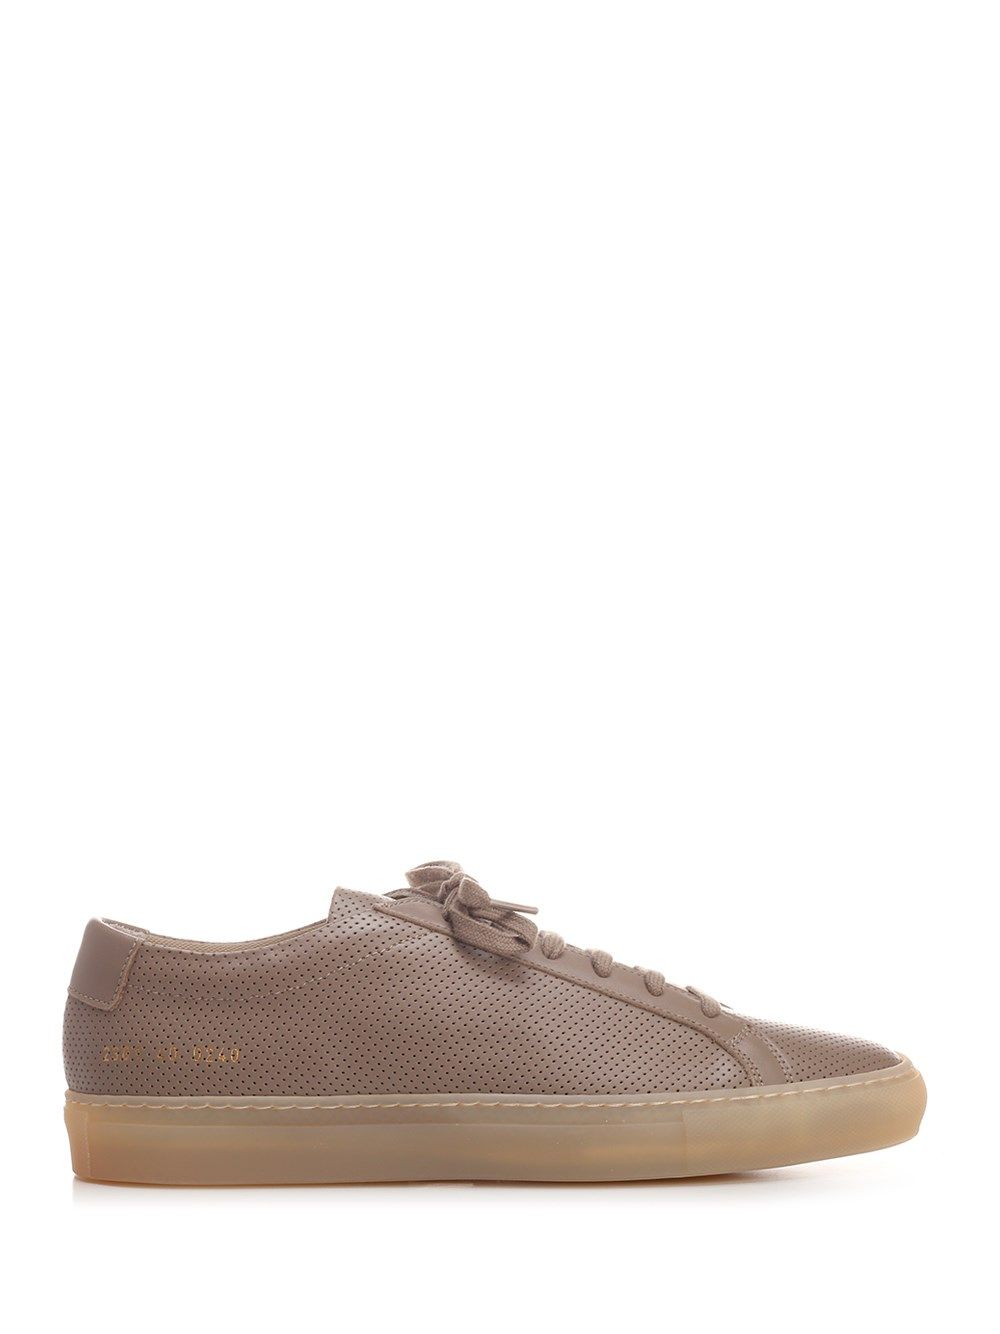 Common Projects Leathers COMMON PROJECTS MEN'S 23010240 BEIGE OTHER MATERIALS SNEAKERS